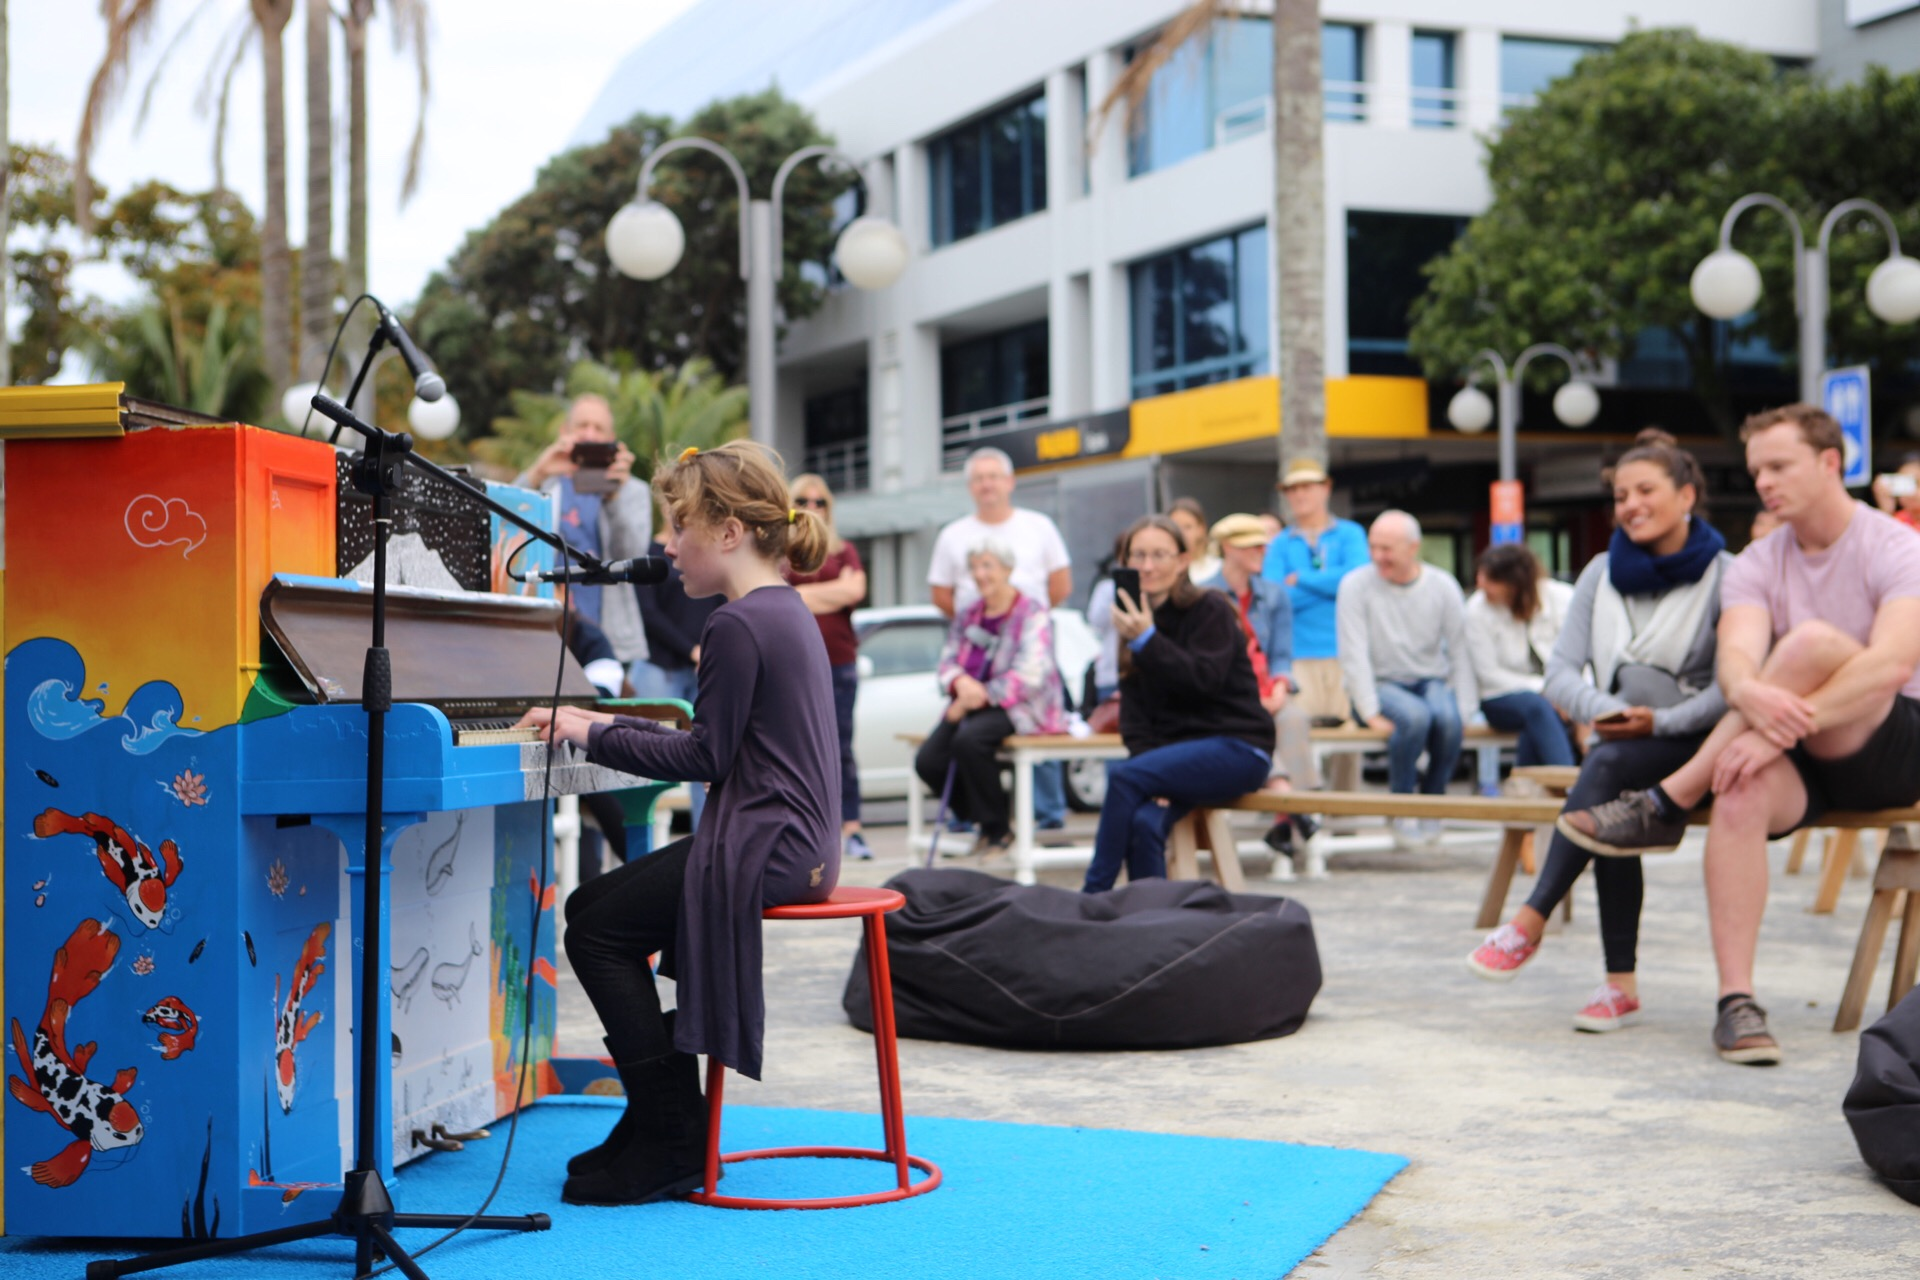 Cara     is well known for her busking performances in Takapuna. She performed at the  Youth Arts New Zealand  showcase of Young Musicians in May 2019 on the public piano that now lives in the blue container.  This piano was gifted to the public space and painted by three artists who designed their artwork based on Takapuna's unique environment with Lake Pupuke, Takapuna Beach and Rangitoto. Youth Arts New Zealand orchestrated the public piano project and facilitated numerous events for young musicians at 38 Hurstmere in May and June 2019.